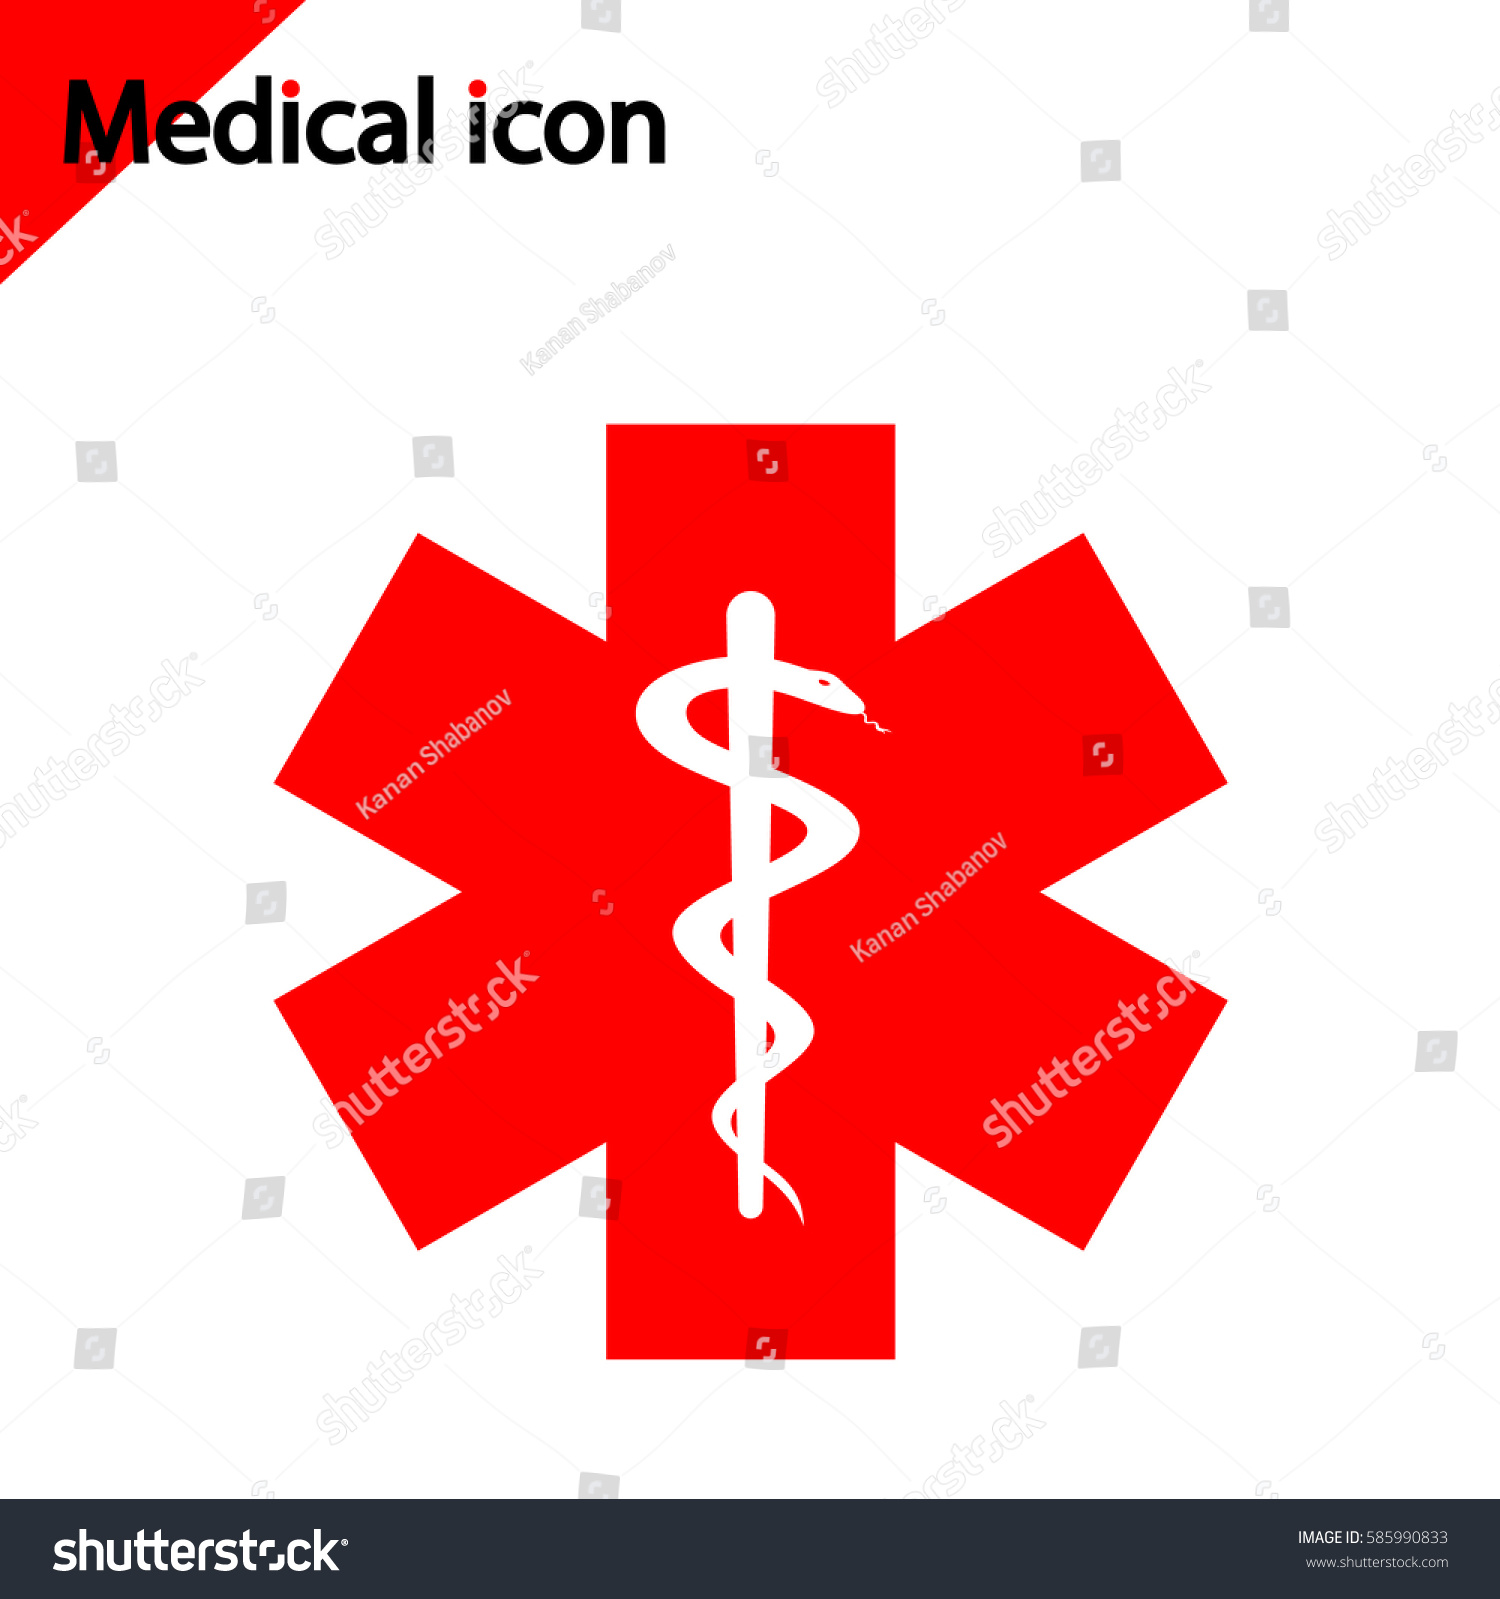 Red Medical Symbol Choice Image Meaning Of Text Symbols